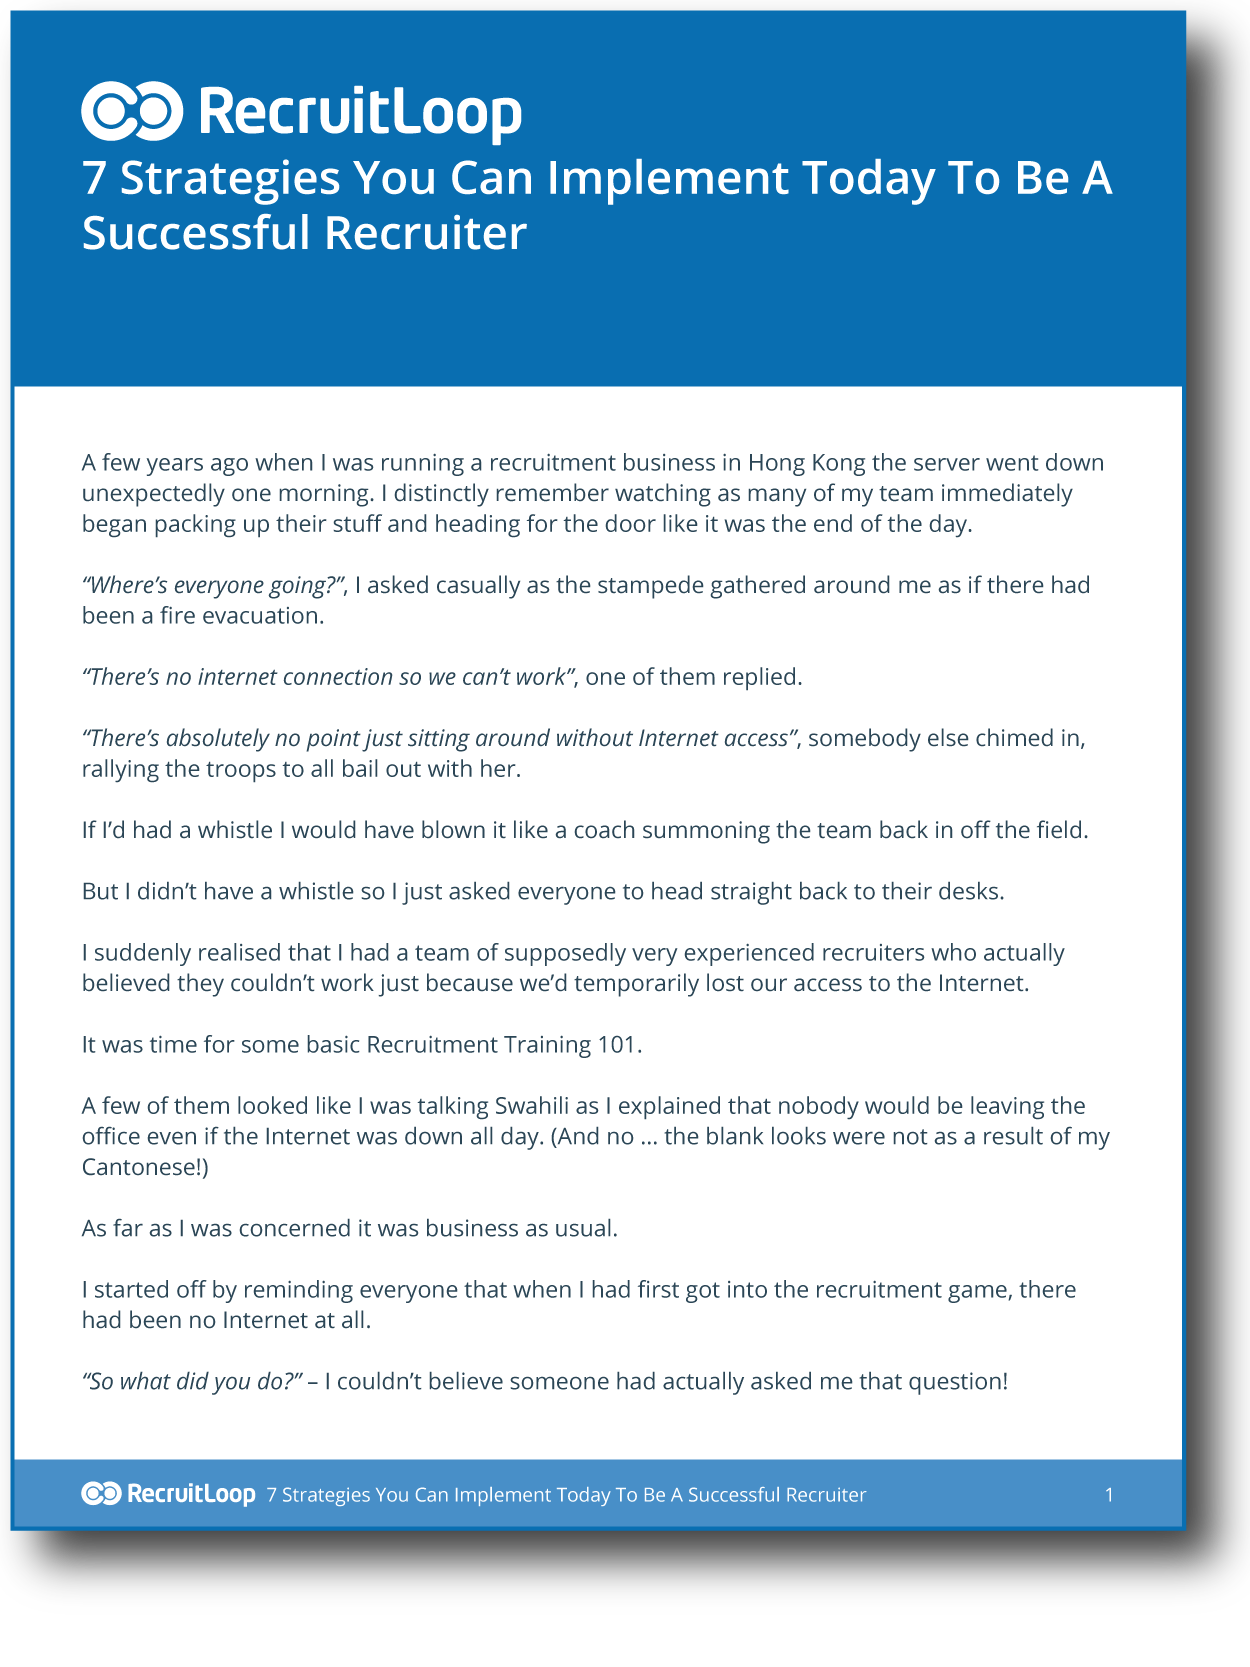 an introduction to the several methods for online recruiting A basic introduction about what recruitment is all about and various methods of conducting it search search upload sign in  there are several types of recruitment: • online recruitment • principles of help wanted advertising • executive recruiter  documents similar to introduction to recruitment process questionnaire on.